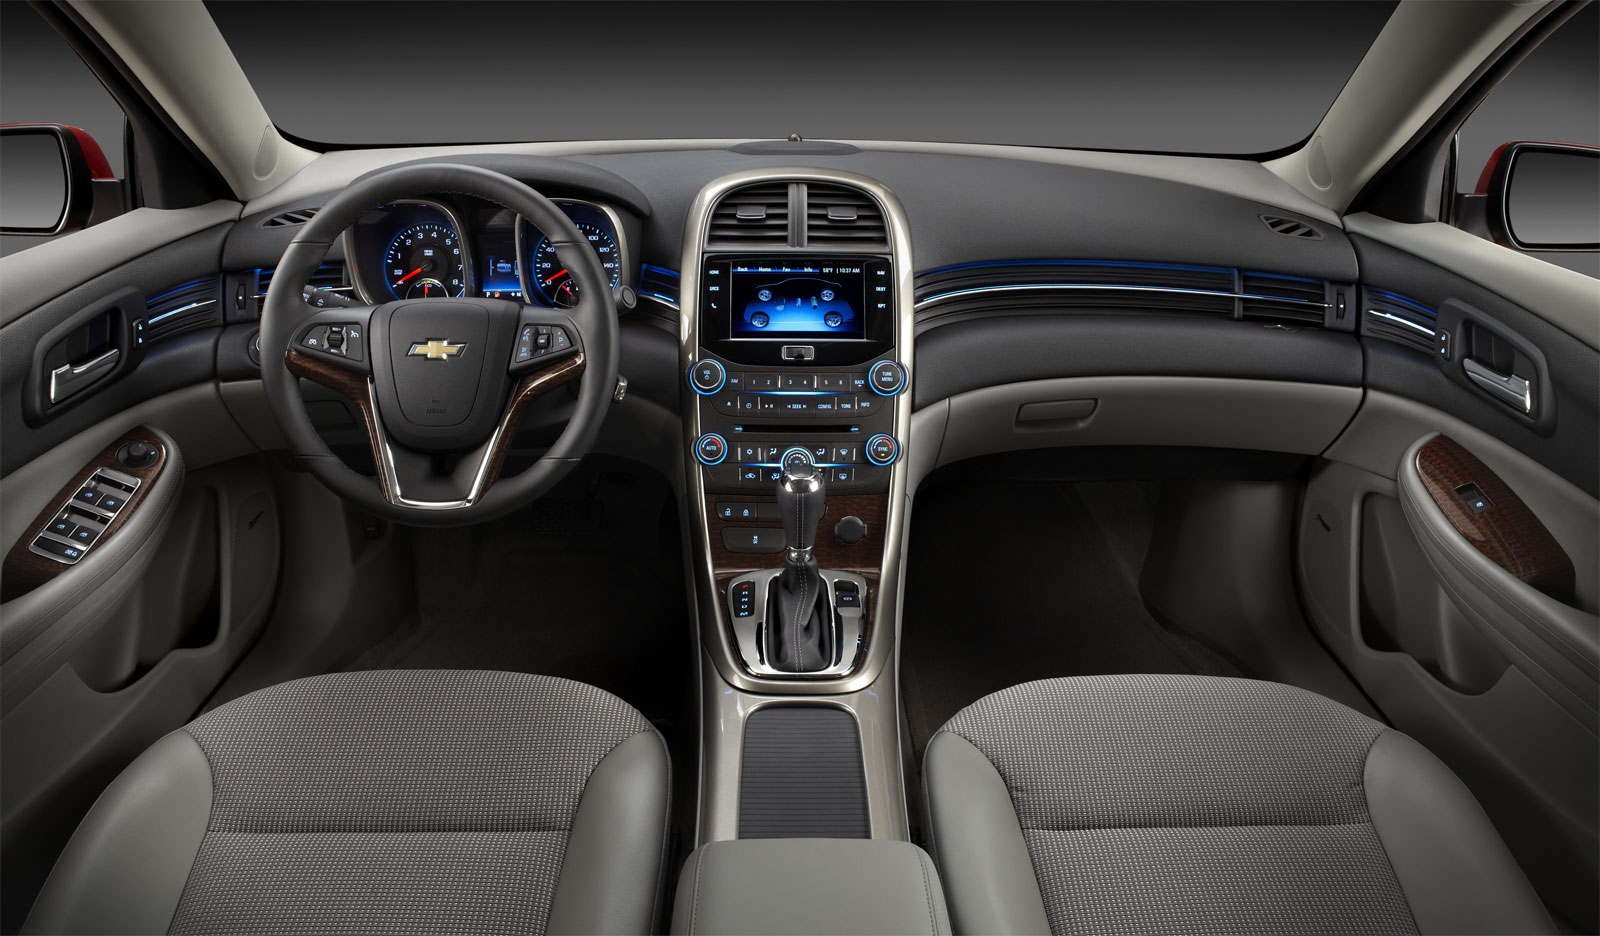 Sport Cars Chevrolet Malibu Eco Hd Wallpapers 2013